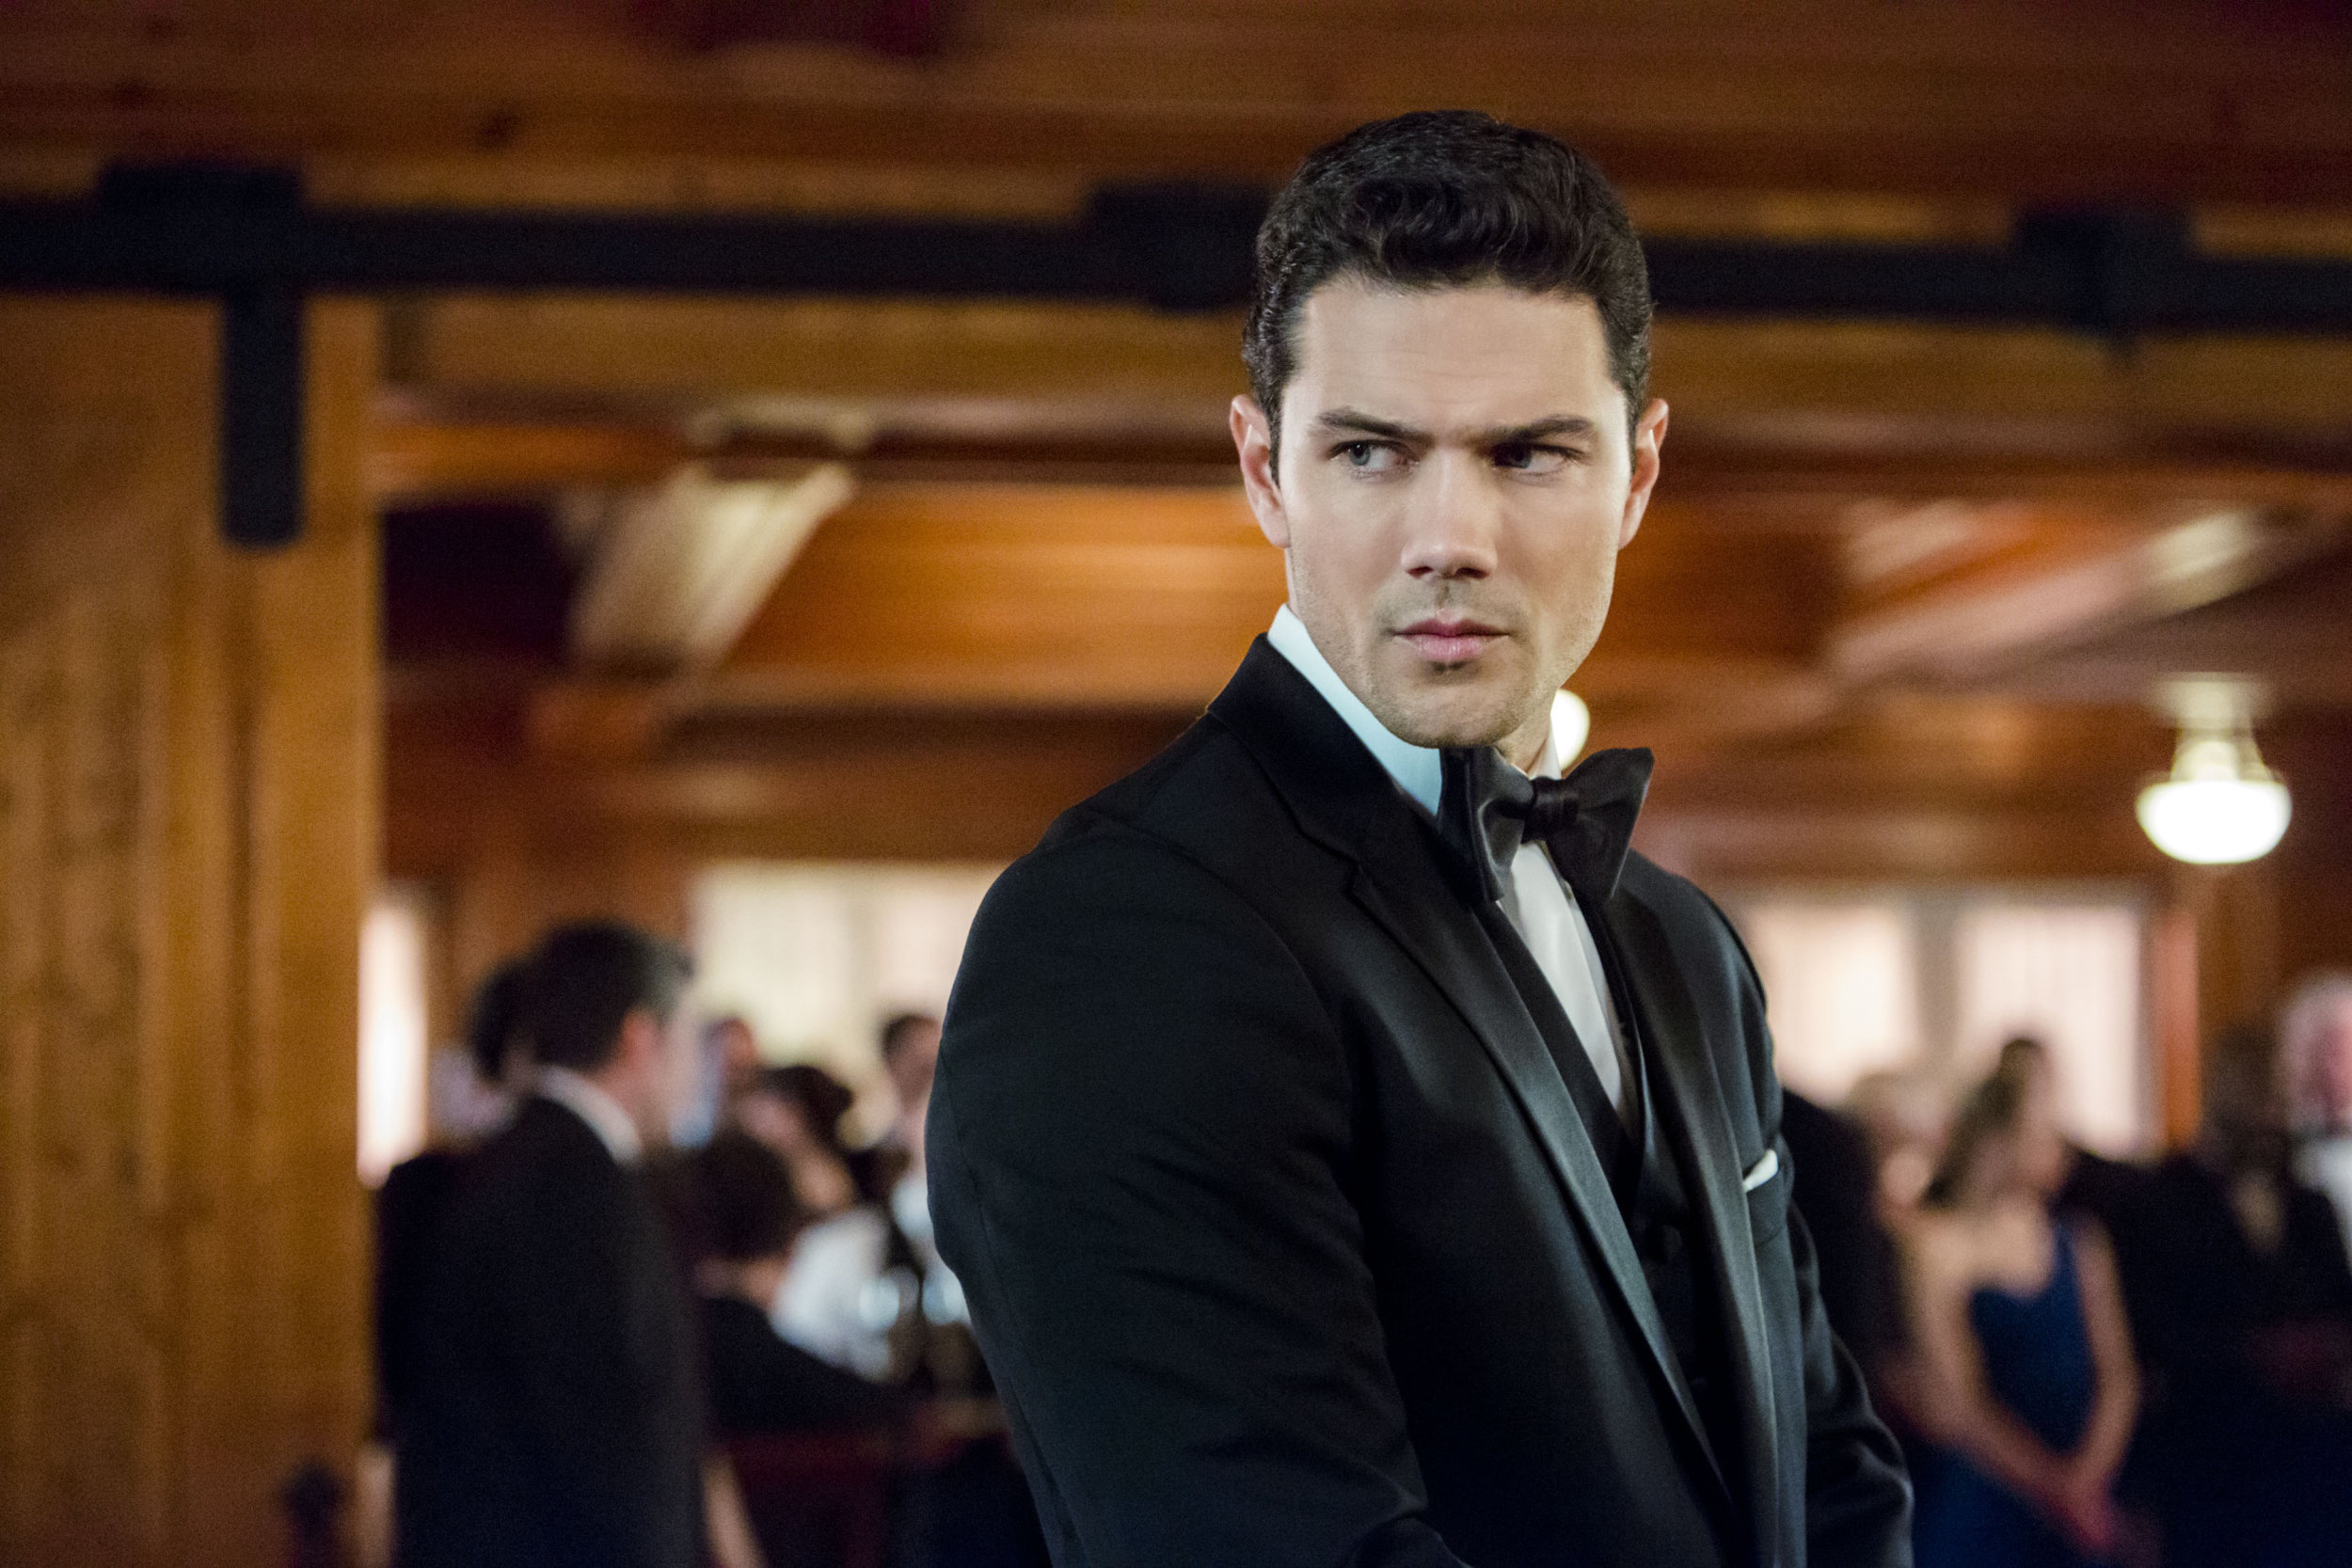 ryan paevey bioryan paevey movies, ryan paevey filmi, ryan paevey instagram, ryan paevey twitter, ryan paevey on the view, ryan paevey wiki, ryan paevey bio, ryan paevey wife, ryan paevey net worth, ryan paevey hallmark movie, ryan paevey injury, ryan paevey imdb, ryan paevey shirtless, ryan paevey clorox commercial, ryan paevey ice bucket challenge, ryan paevey interview, ryan paevey and kirsten storms, ryan paevey pictures